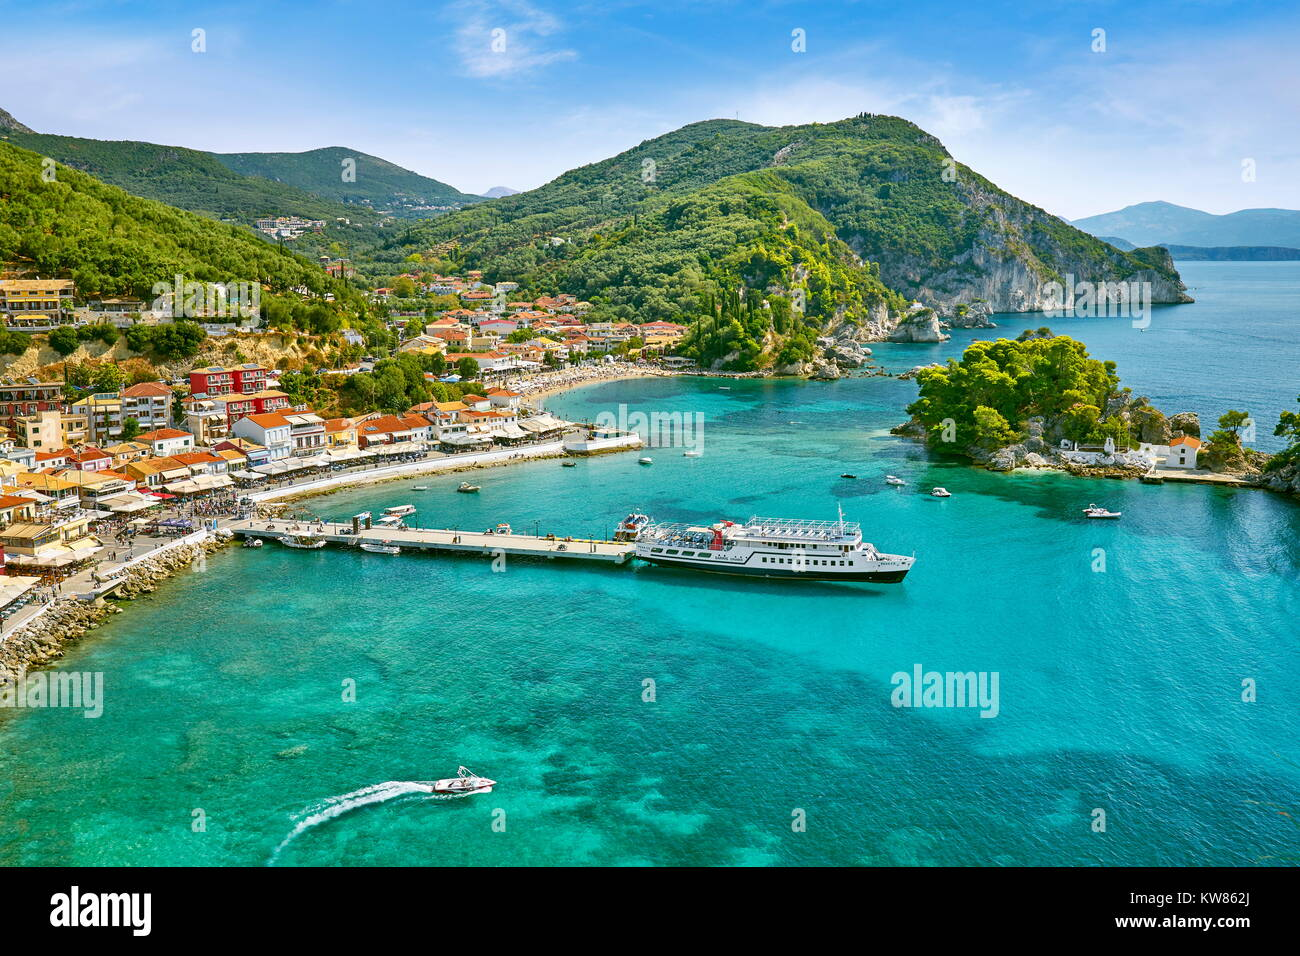 Townscape of Parga, Greece - Stock Image